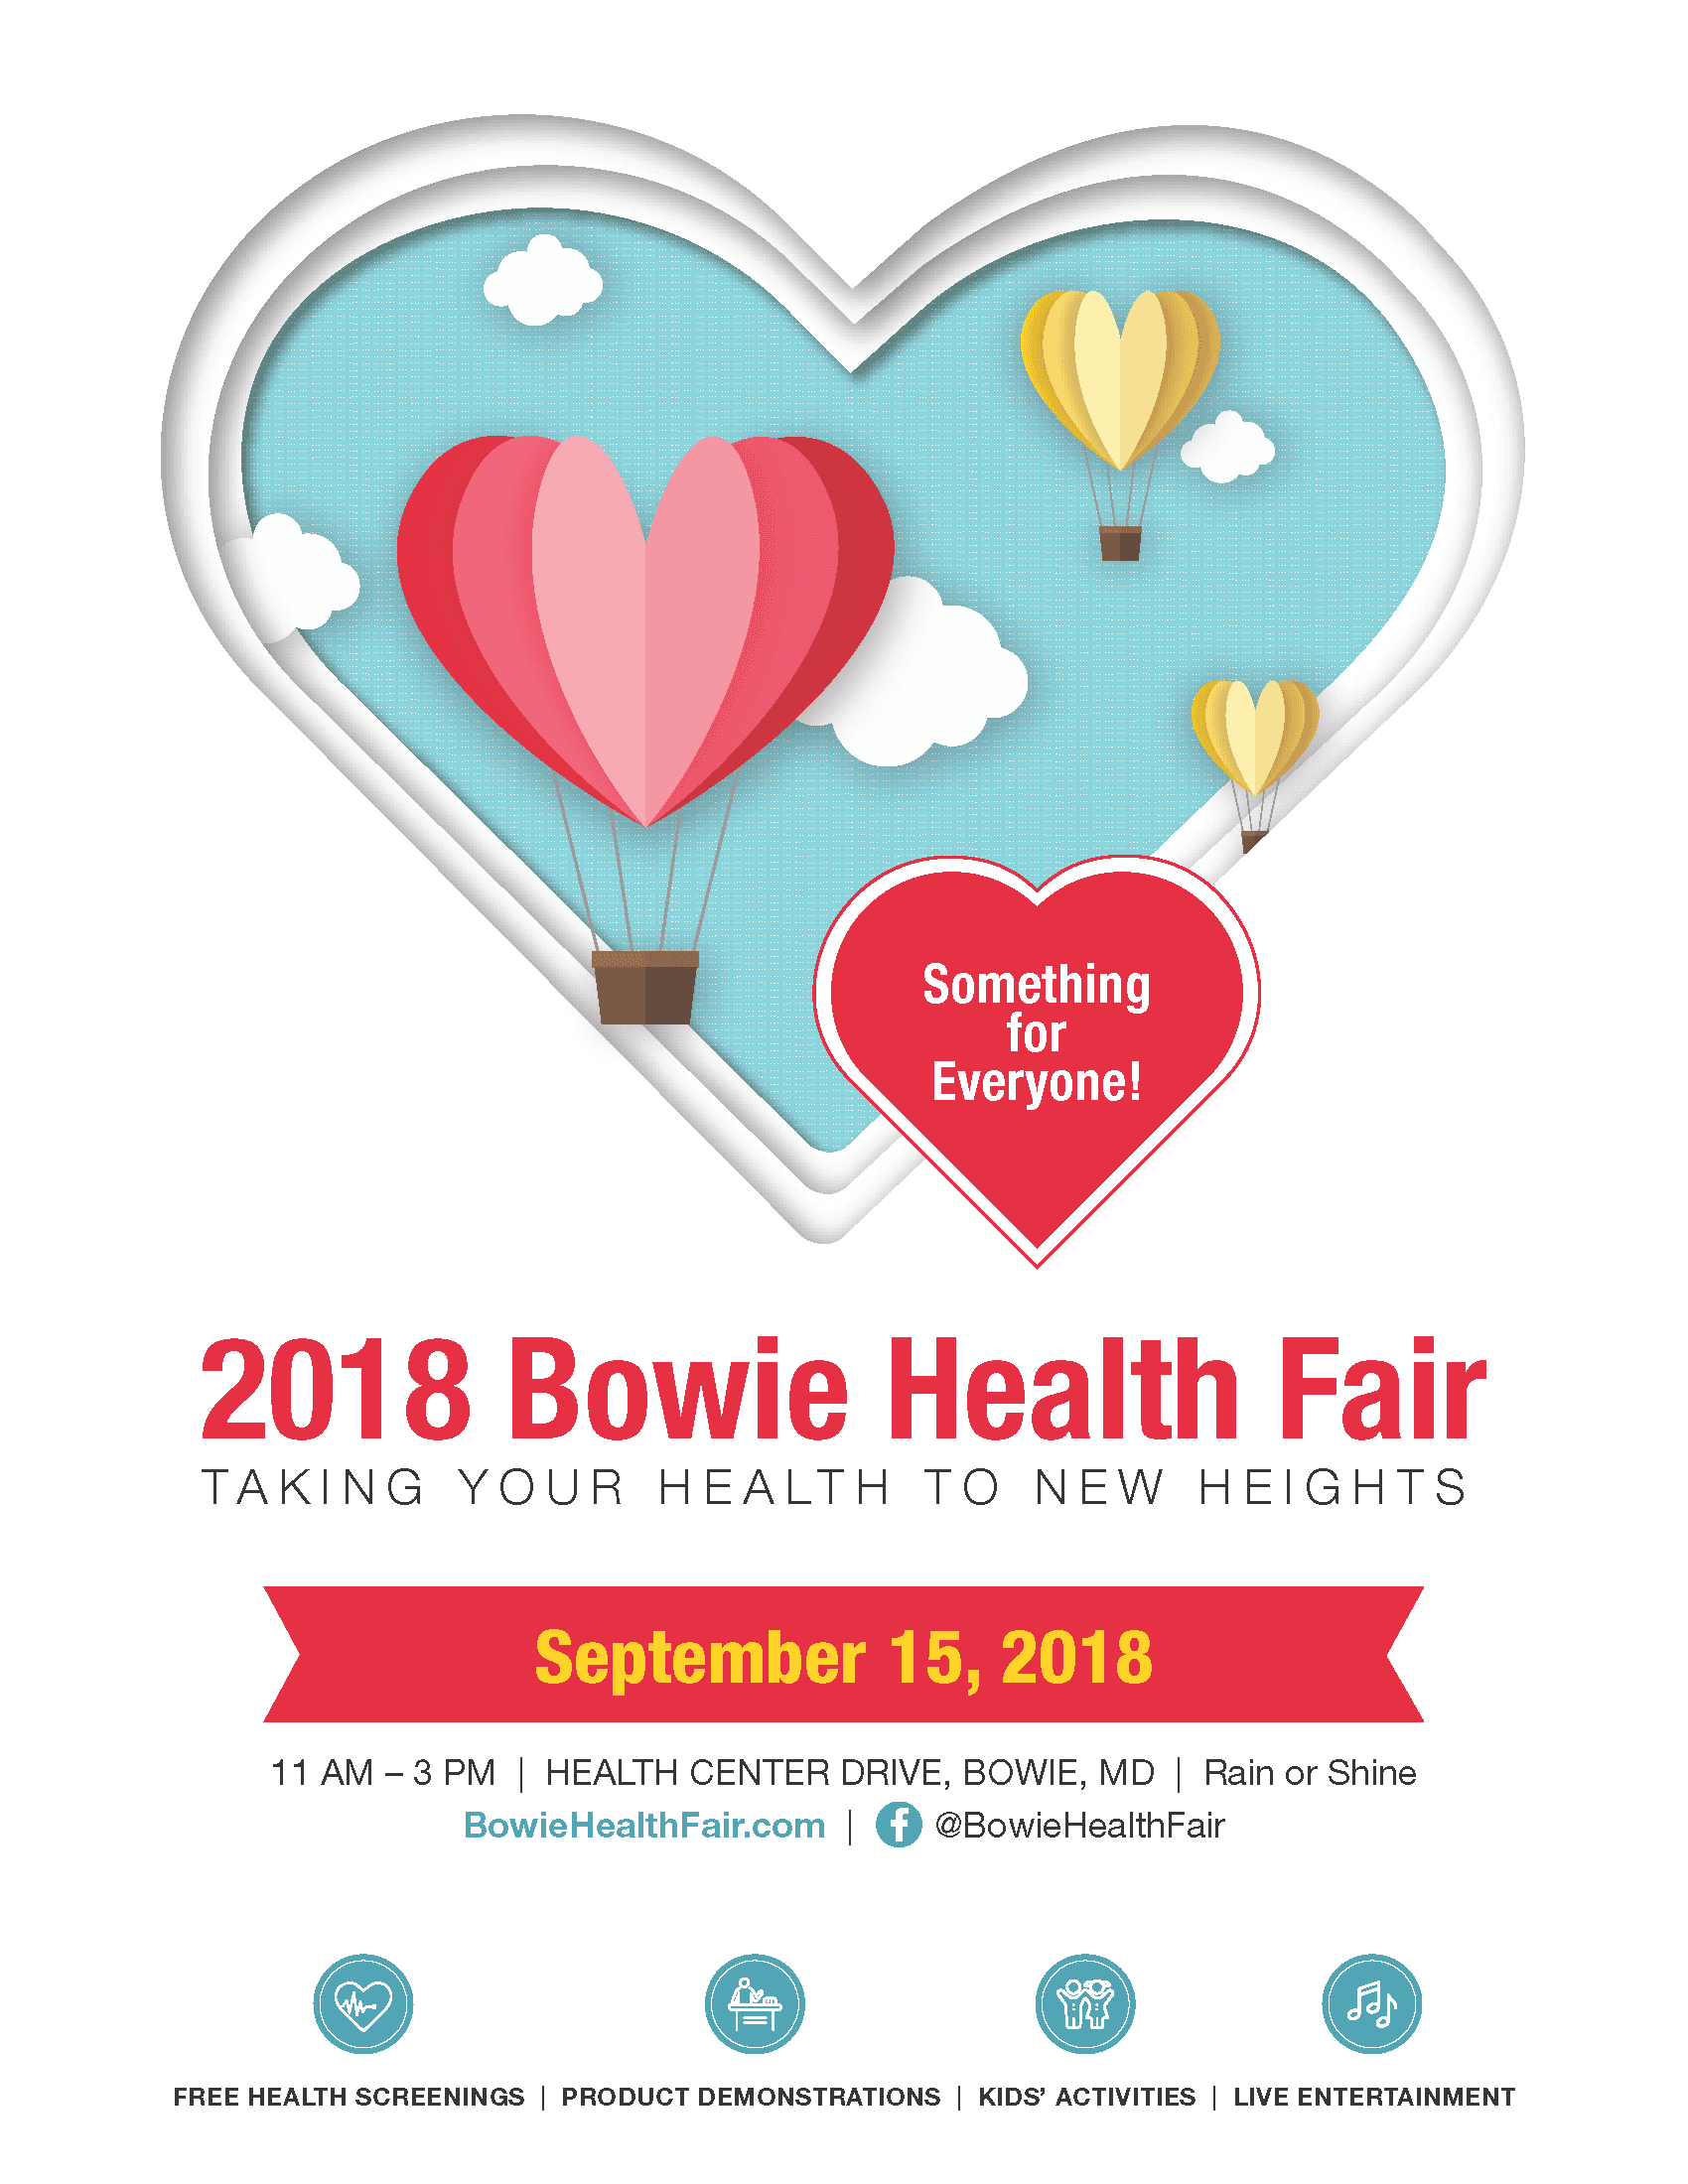 2018 Bowie Health Fair Flyer